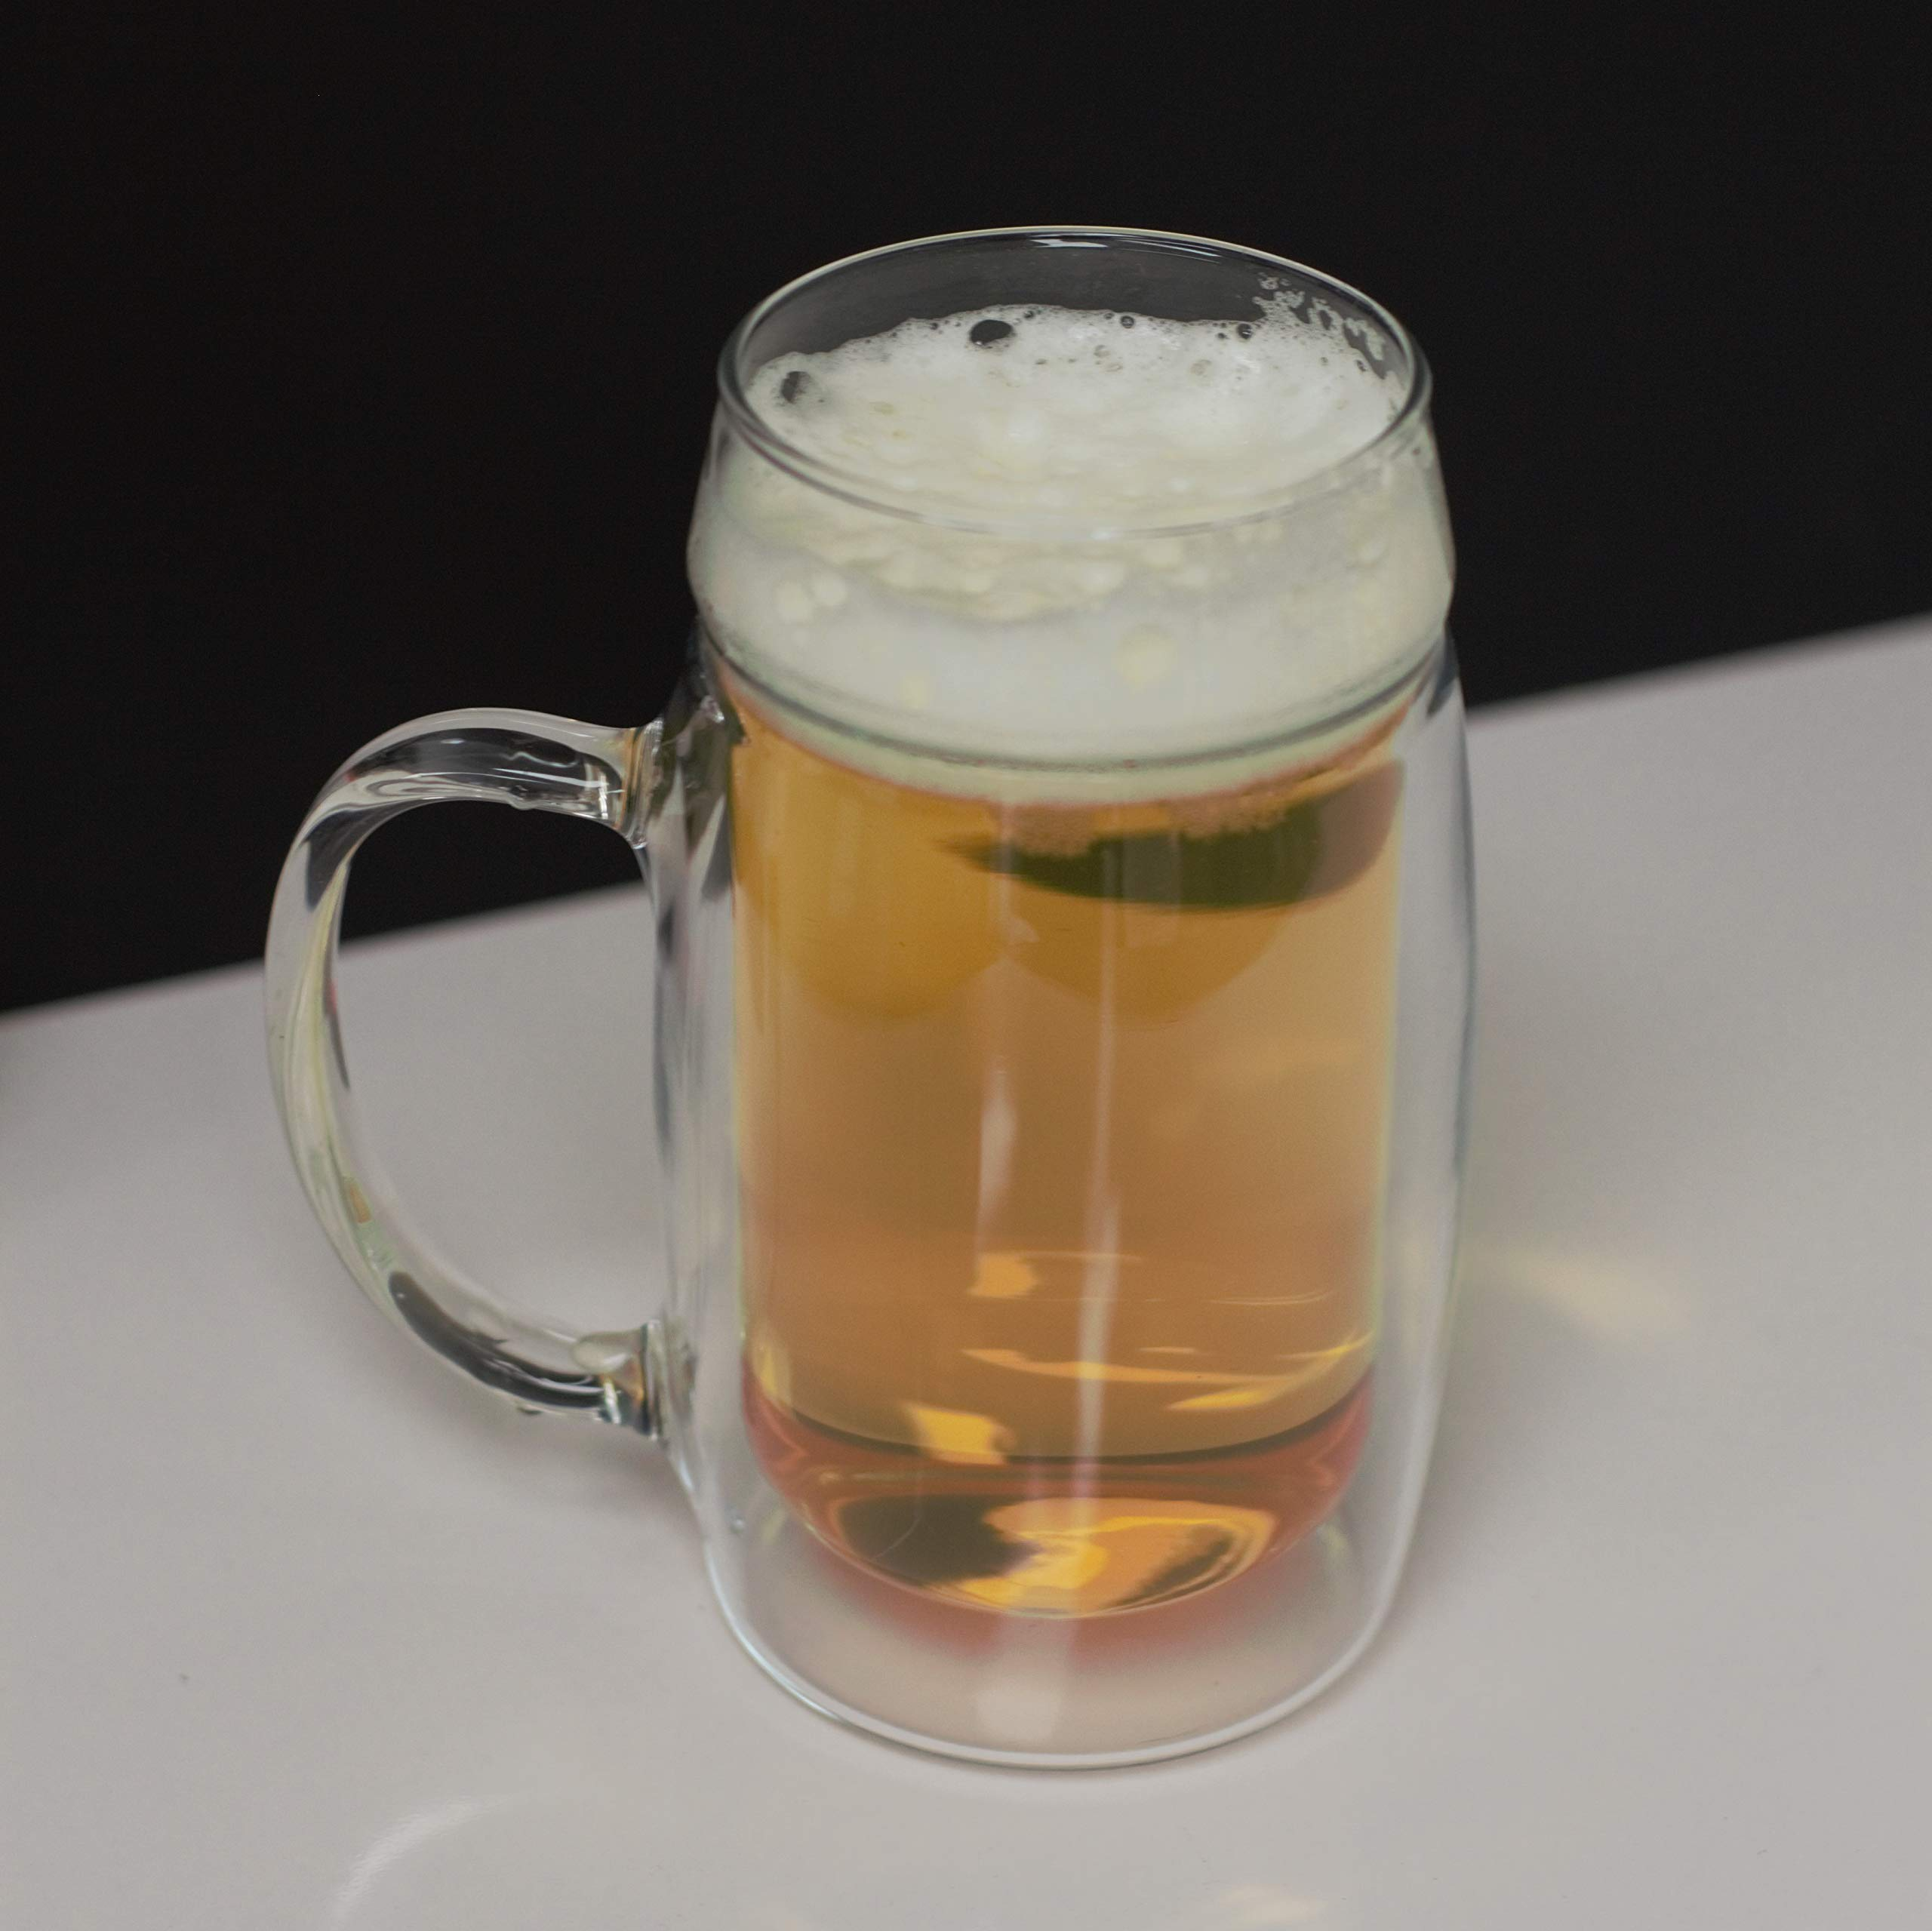 Simax Glassware Double Walled Insulated Glass Beer Mug   With Handle, Freezer, Microwave, Hot Water, and Dishwasher Safe Borosilicate Glass, 16.9 Ounce (4)